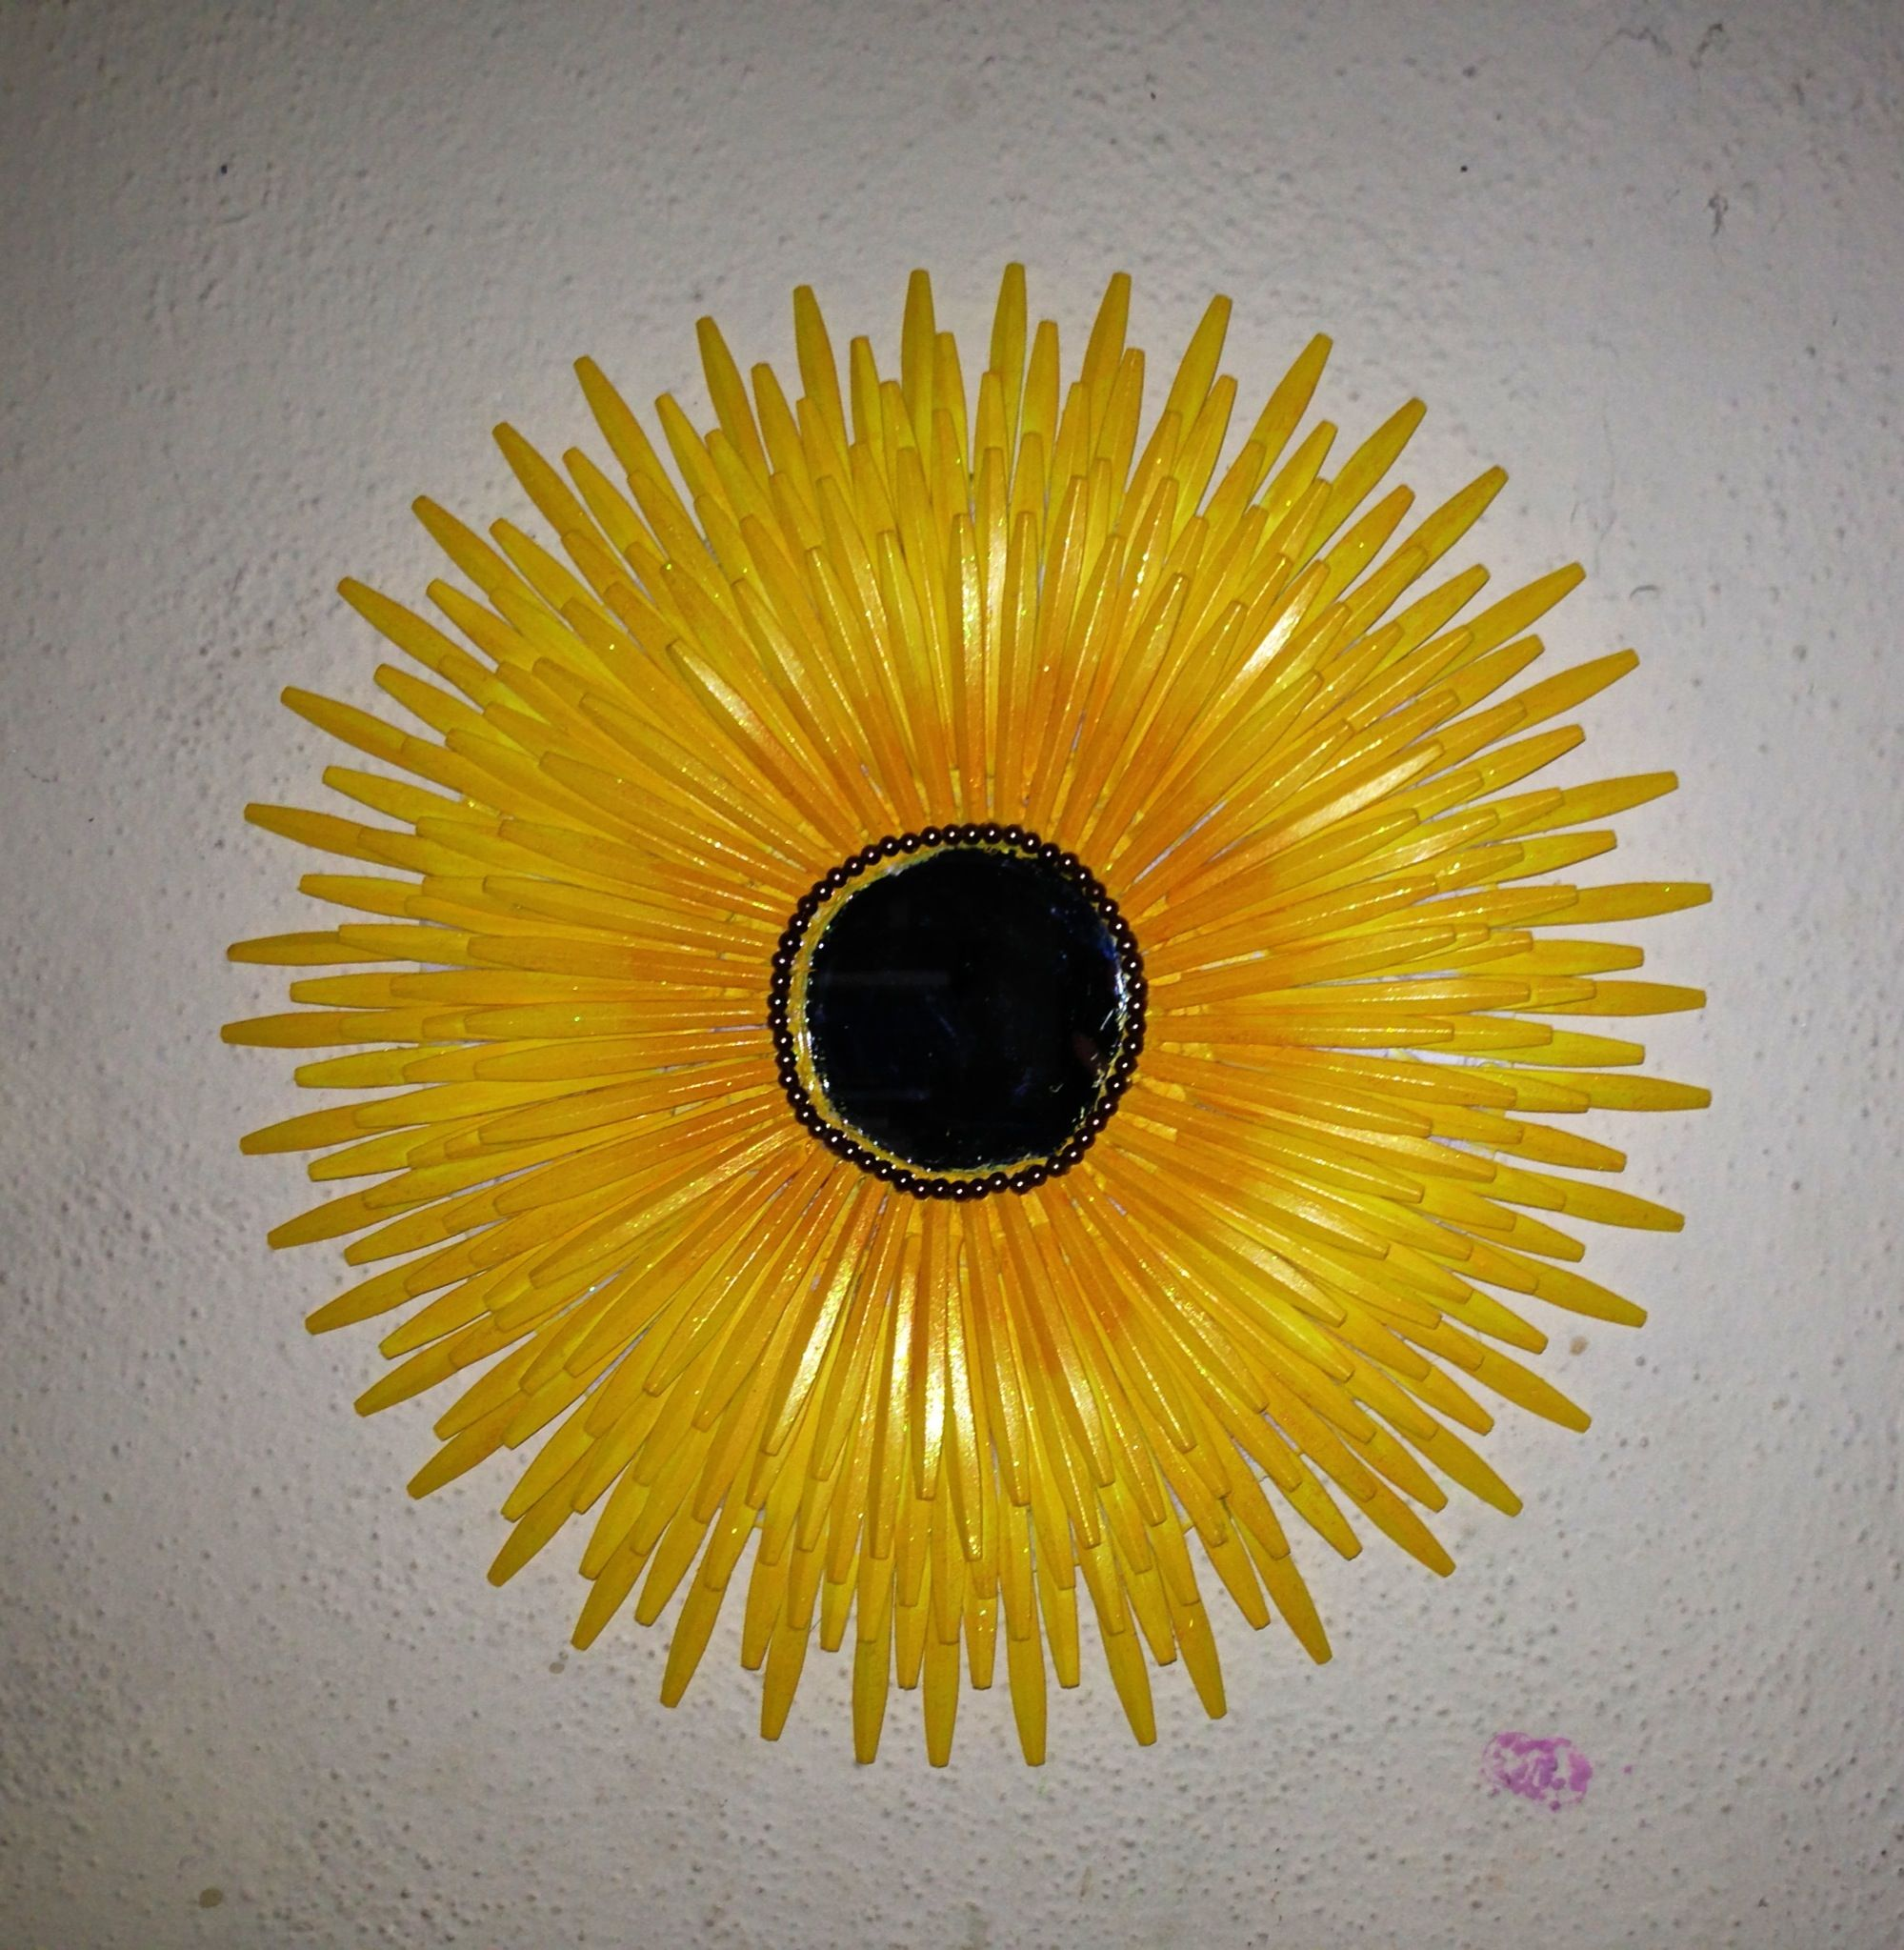 Spoon Mirror Sunburst Mirror Made With Plastic Spoons Interesting Pinterest